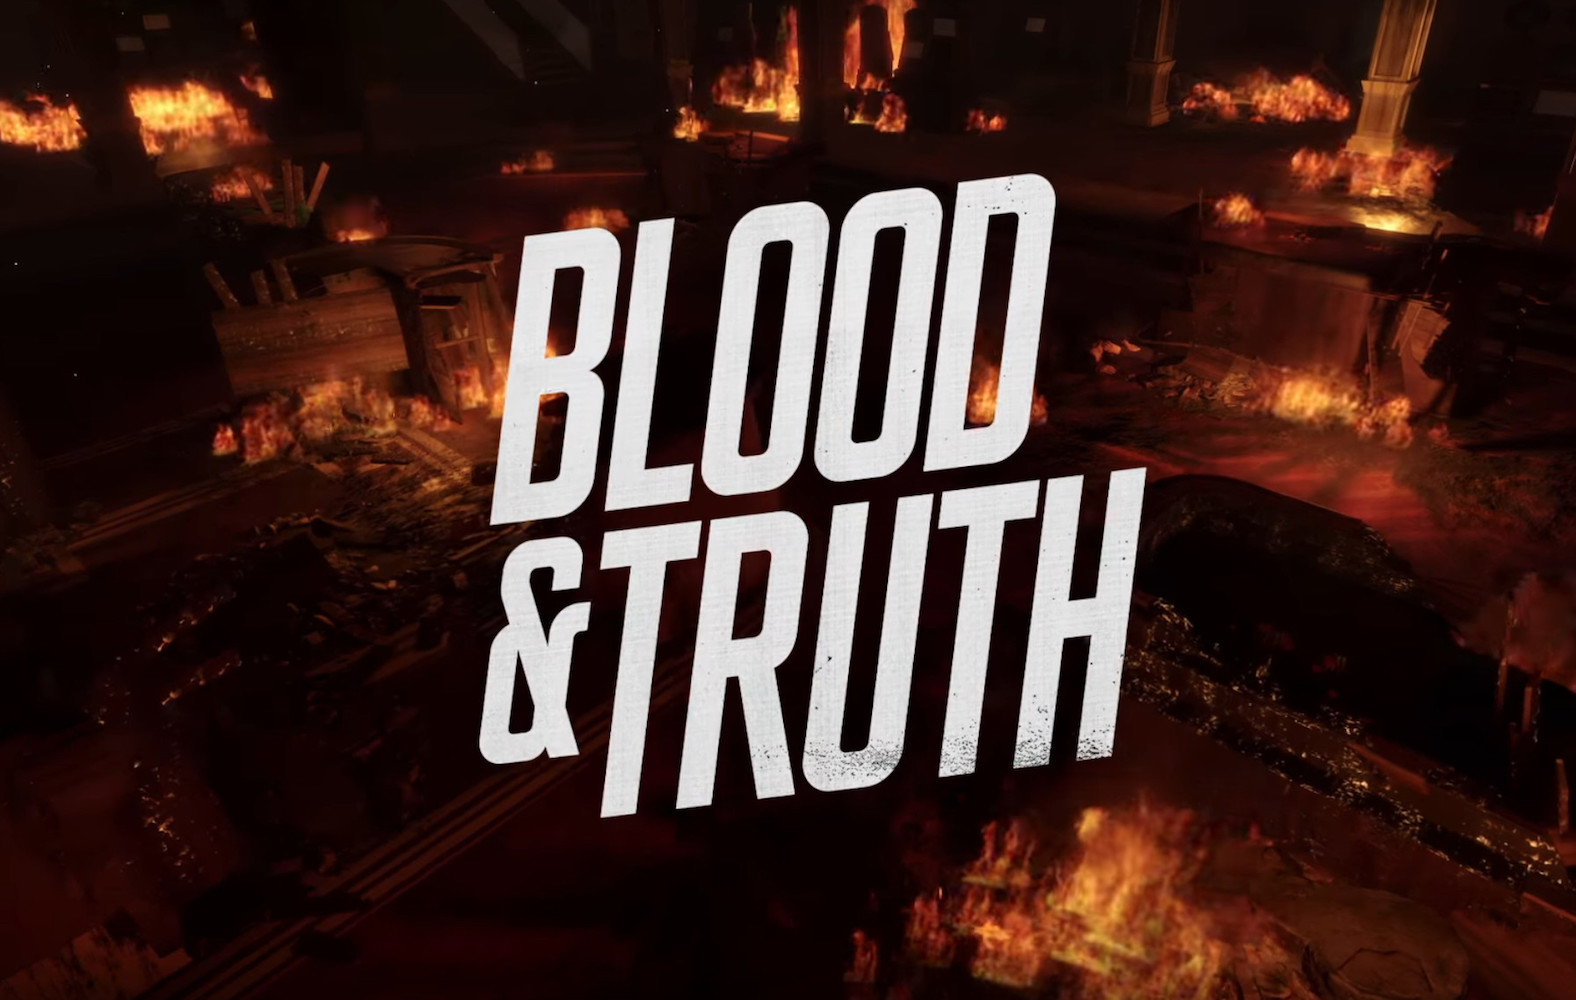 PlayStation Releases Trailer For Upcoming Game 'Blood & Truth' On PS VR